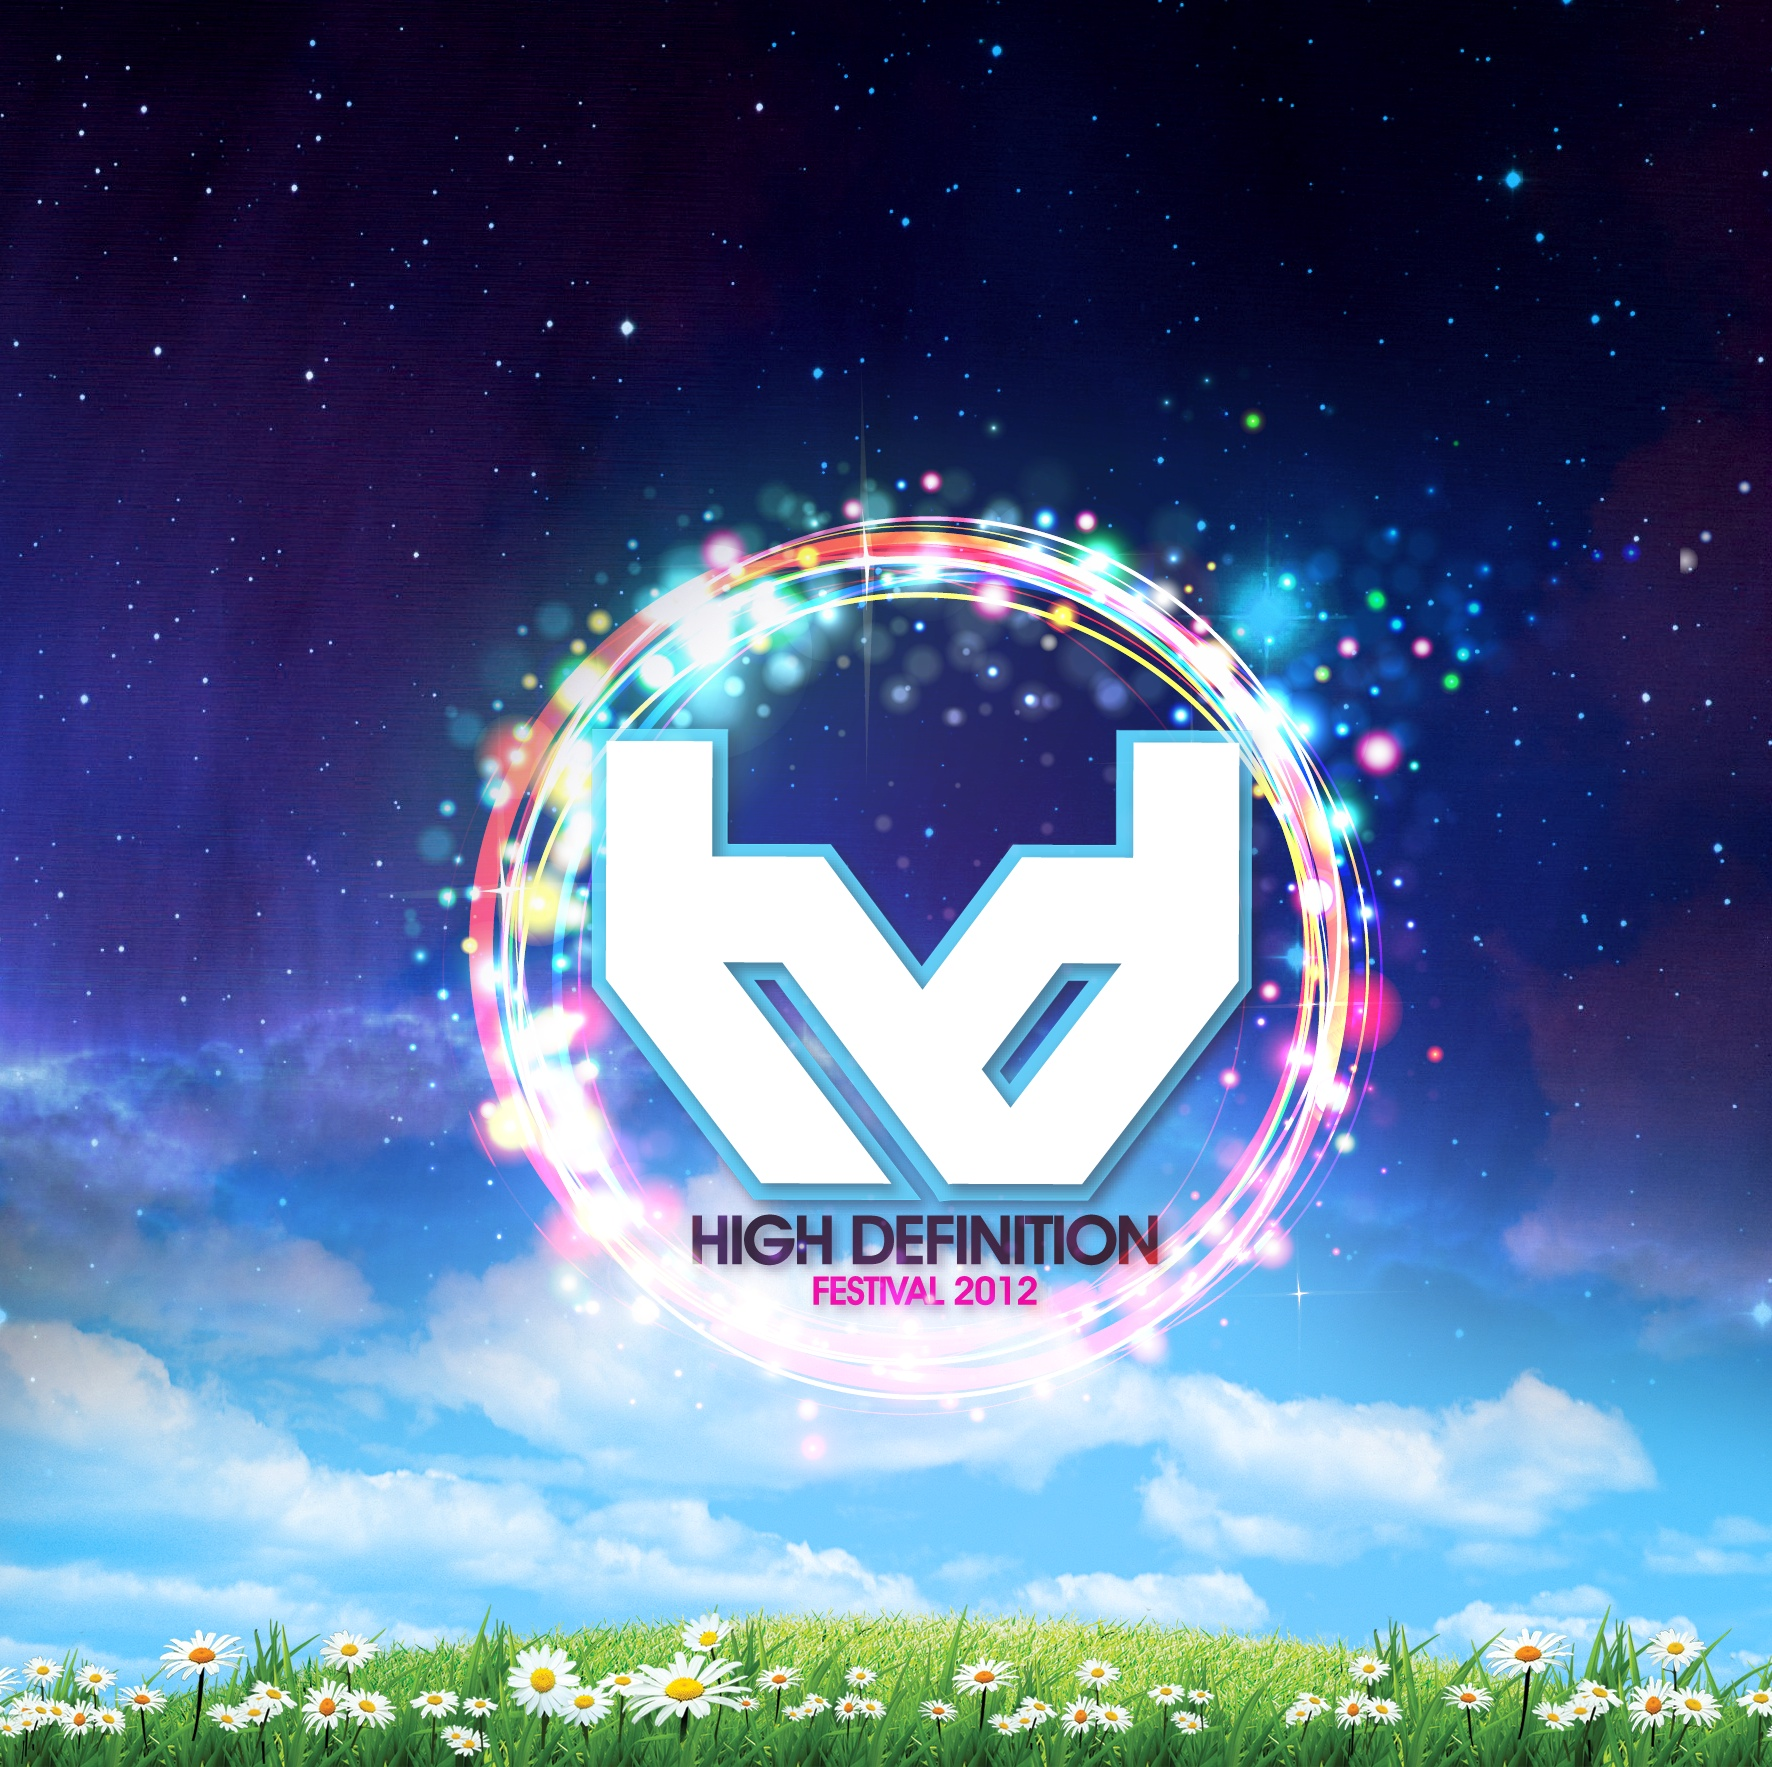 High Definition Festival logo